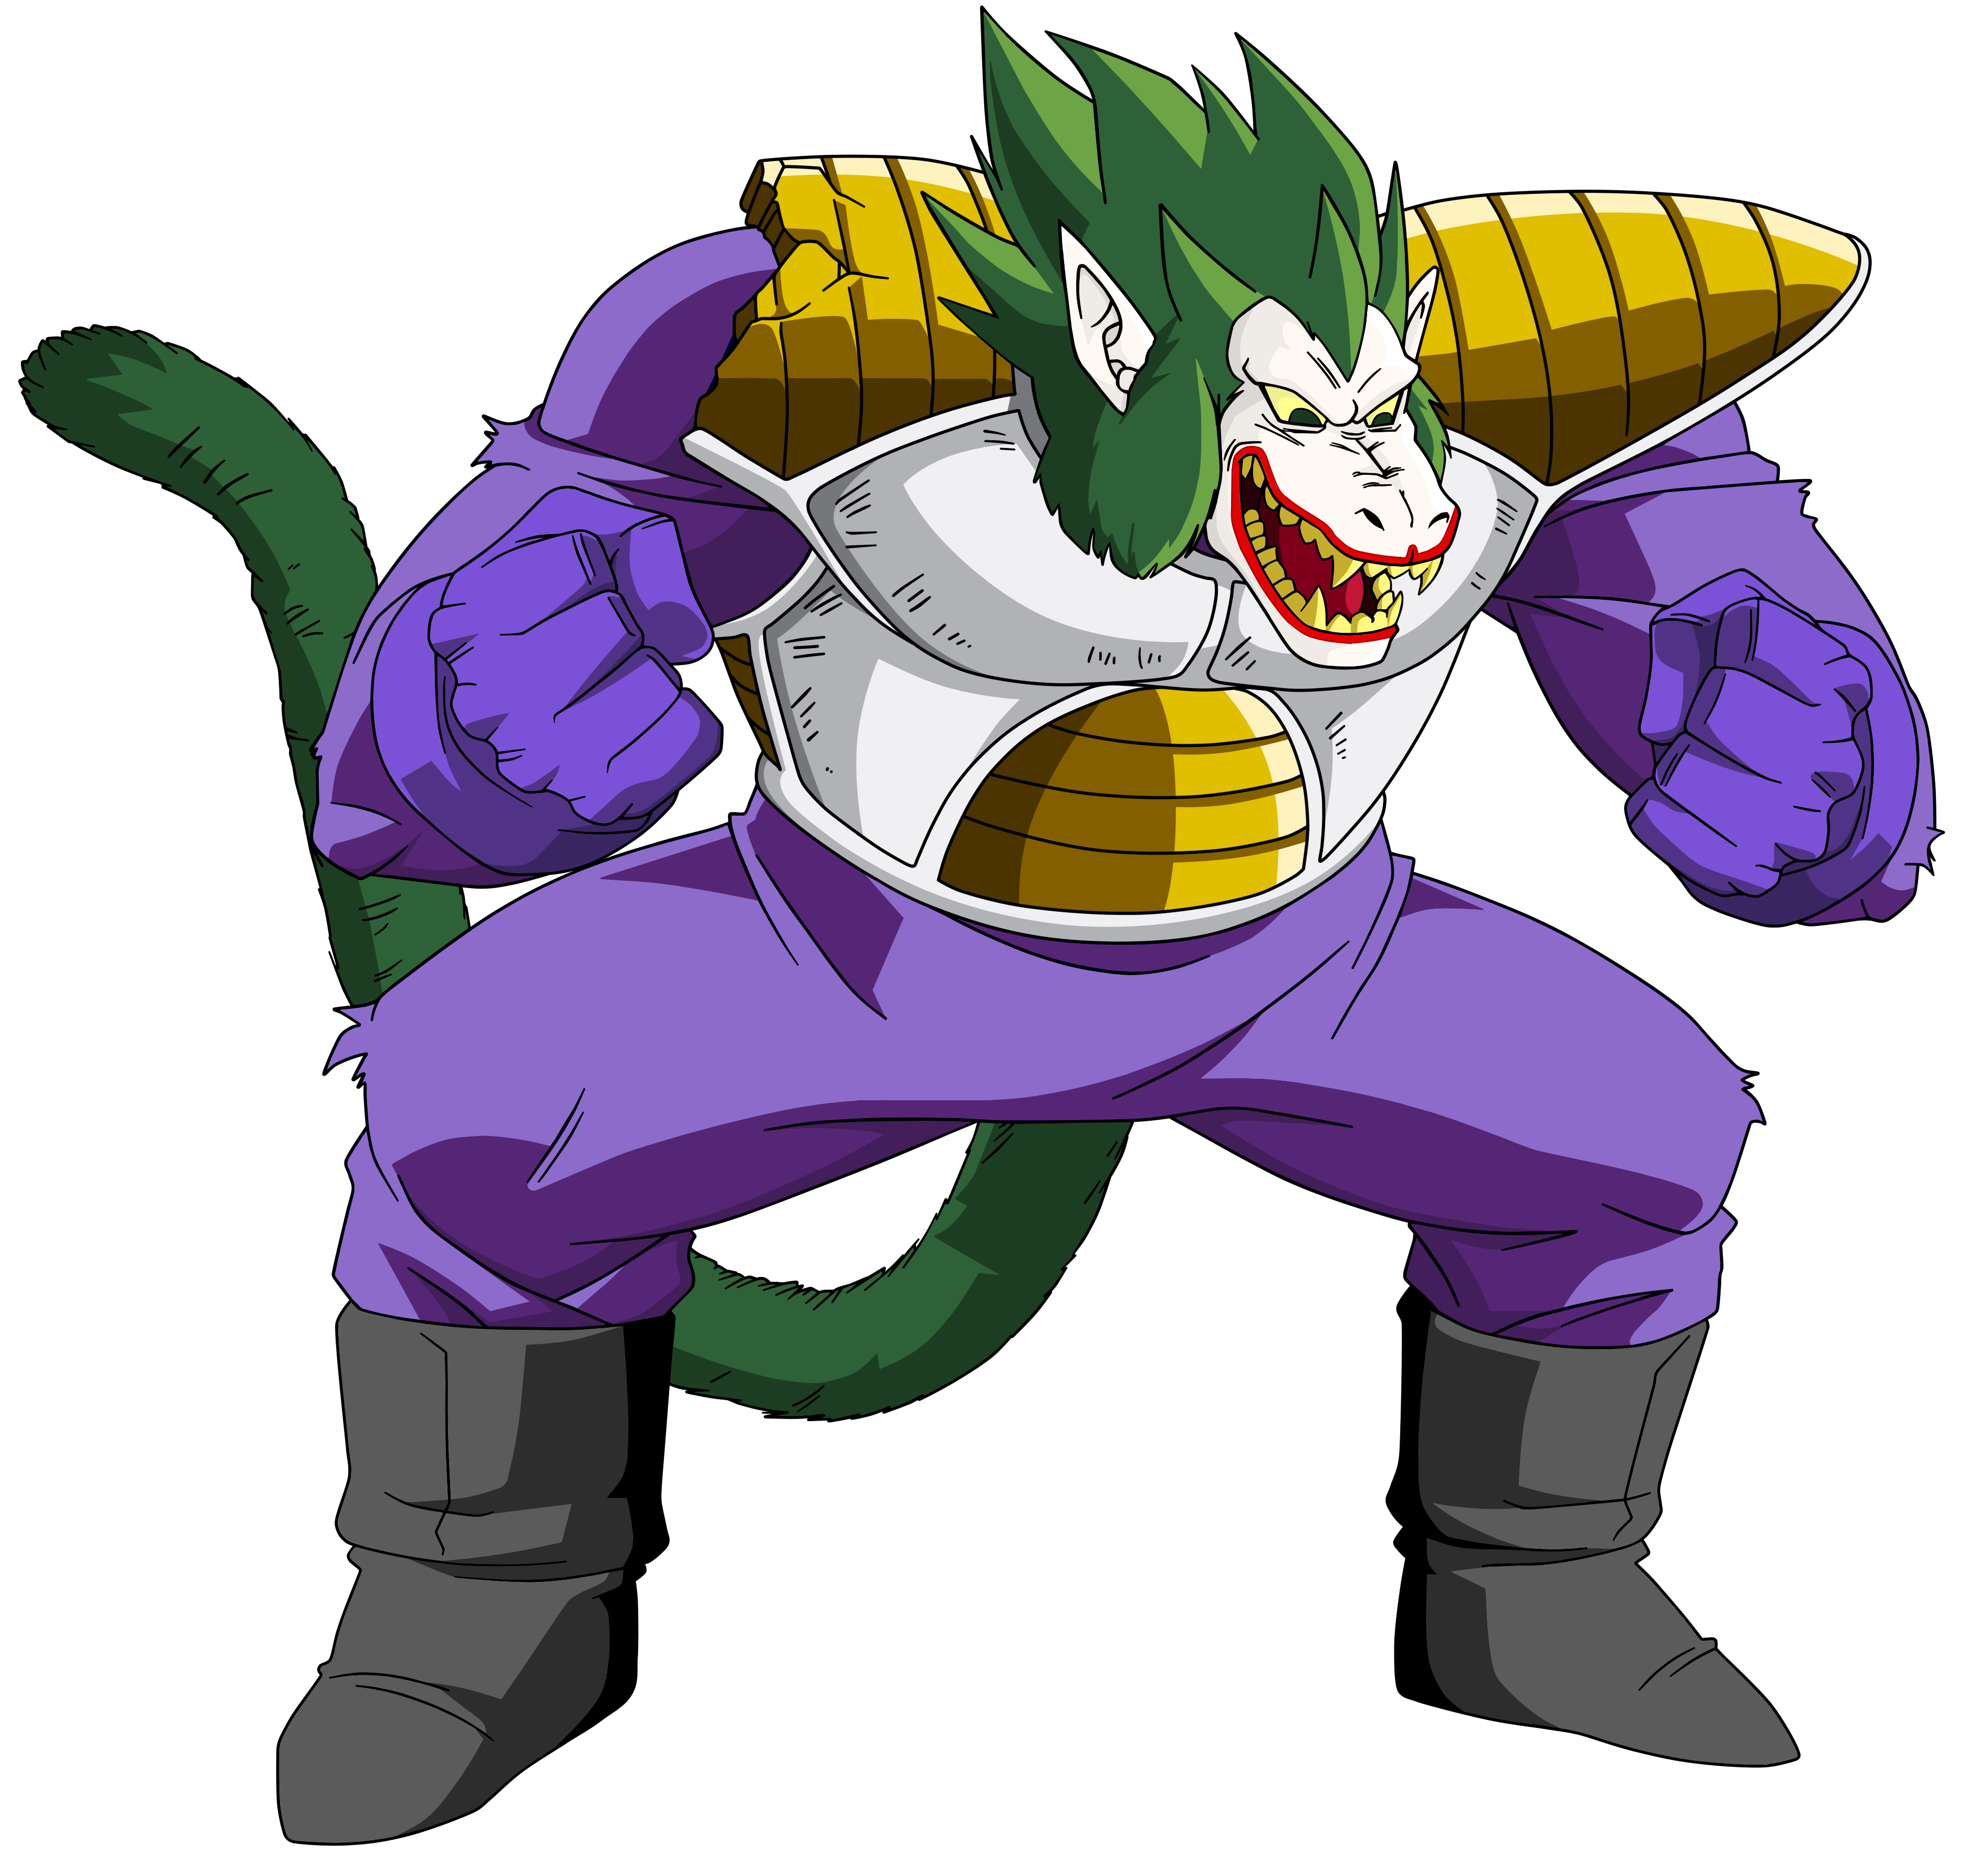 Oozaru Vegeta The Joker  by EliteSaiyanWarriorBaby Vegeta Oozaru